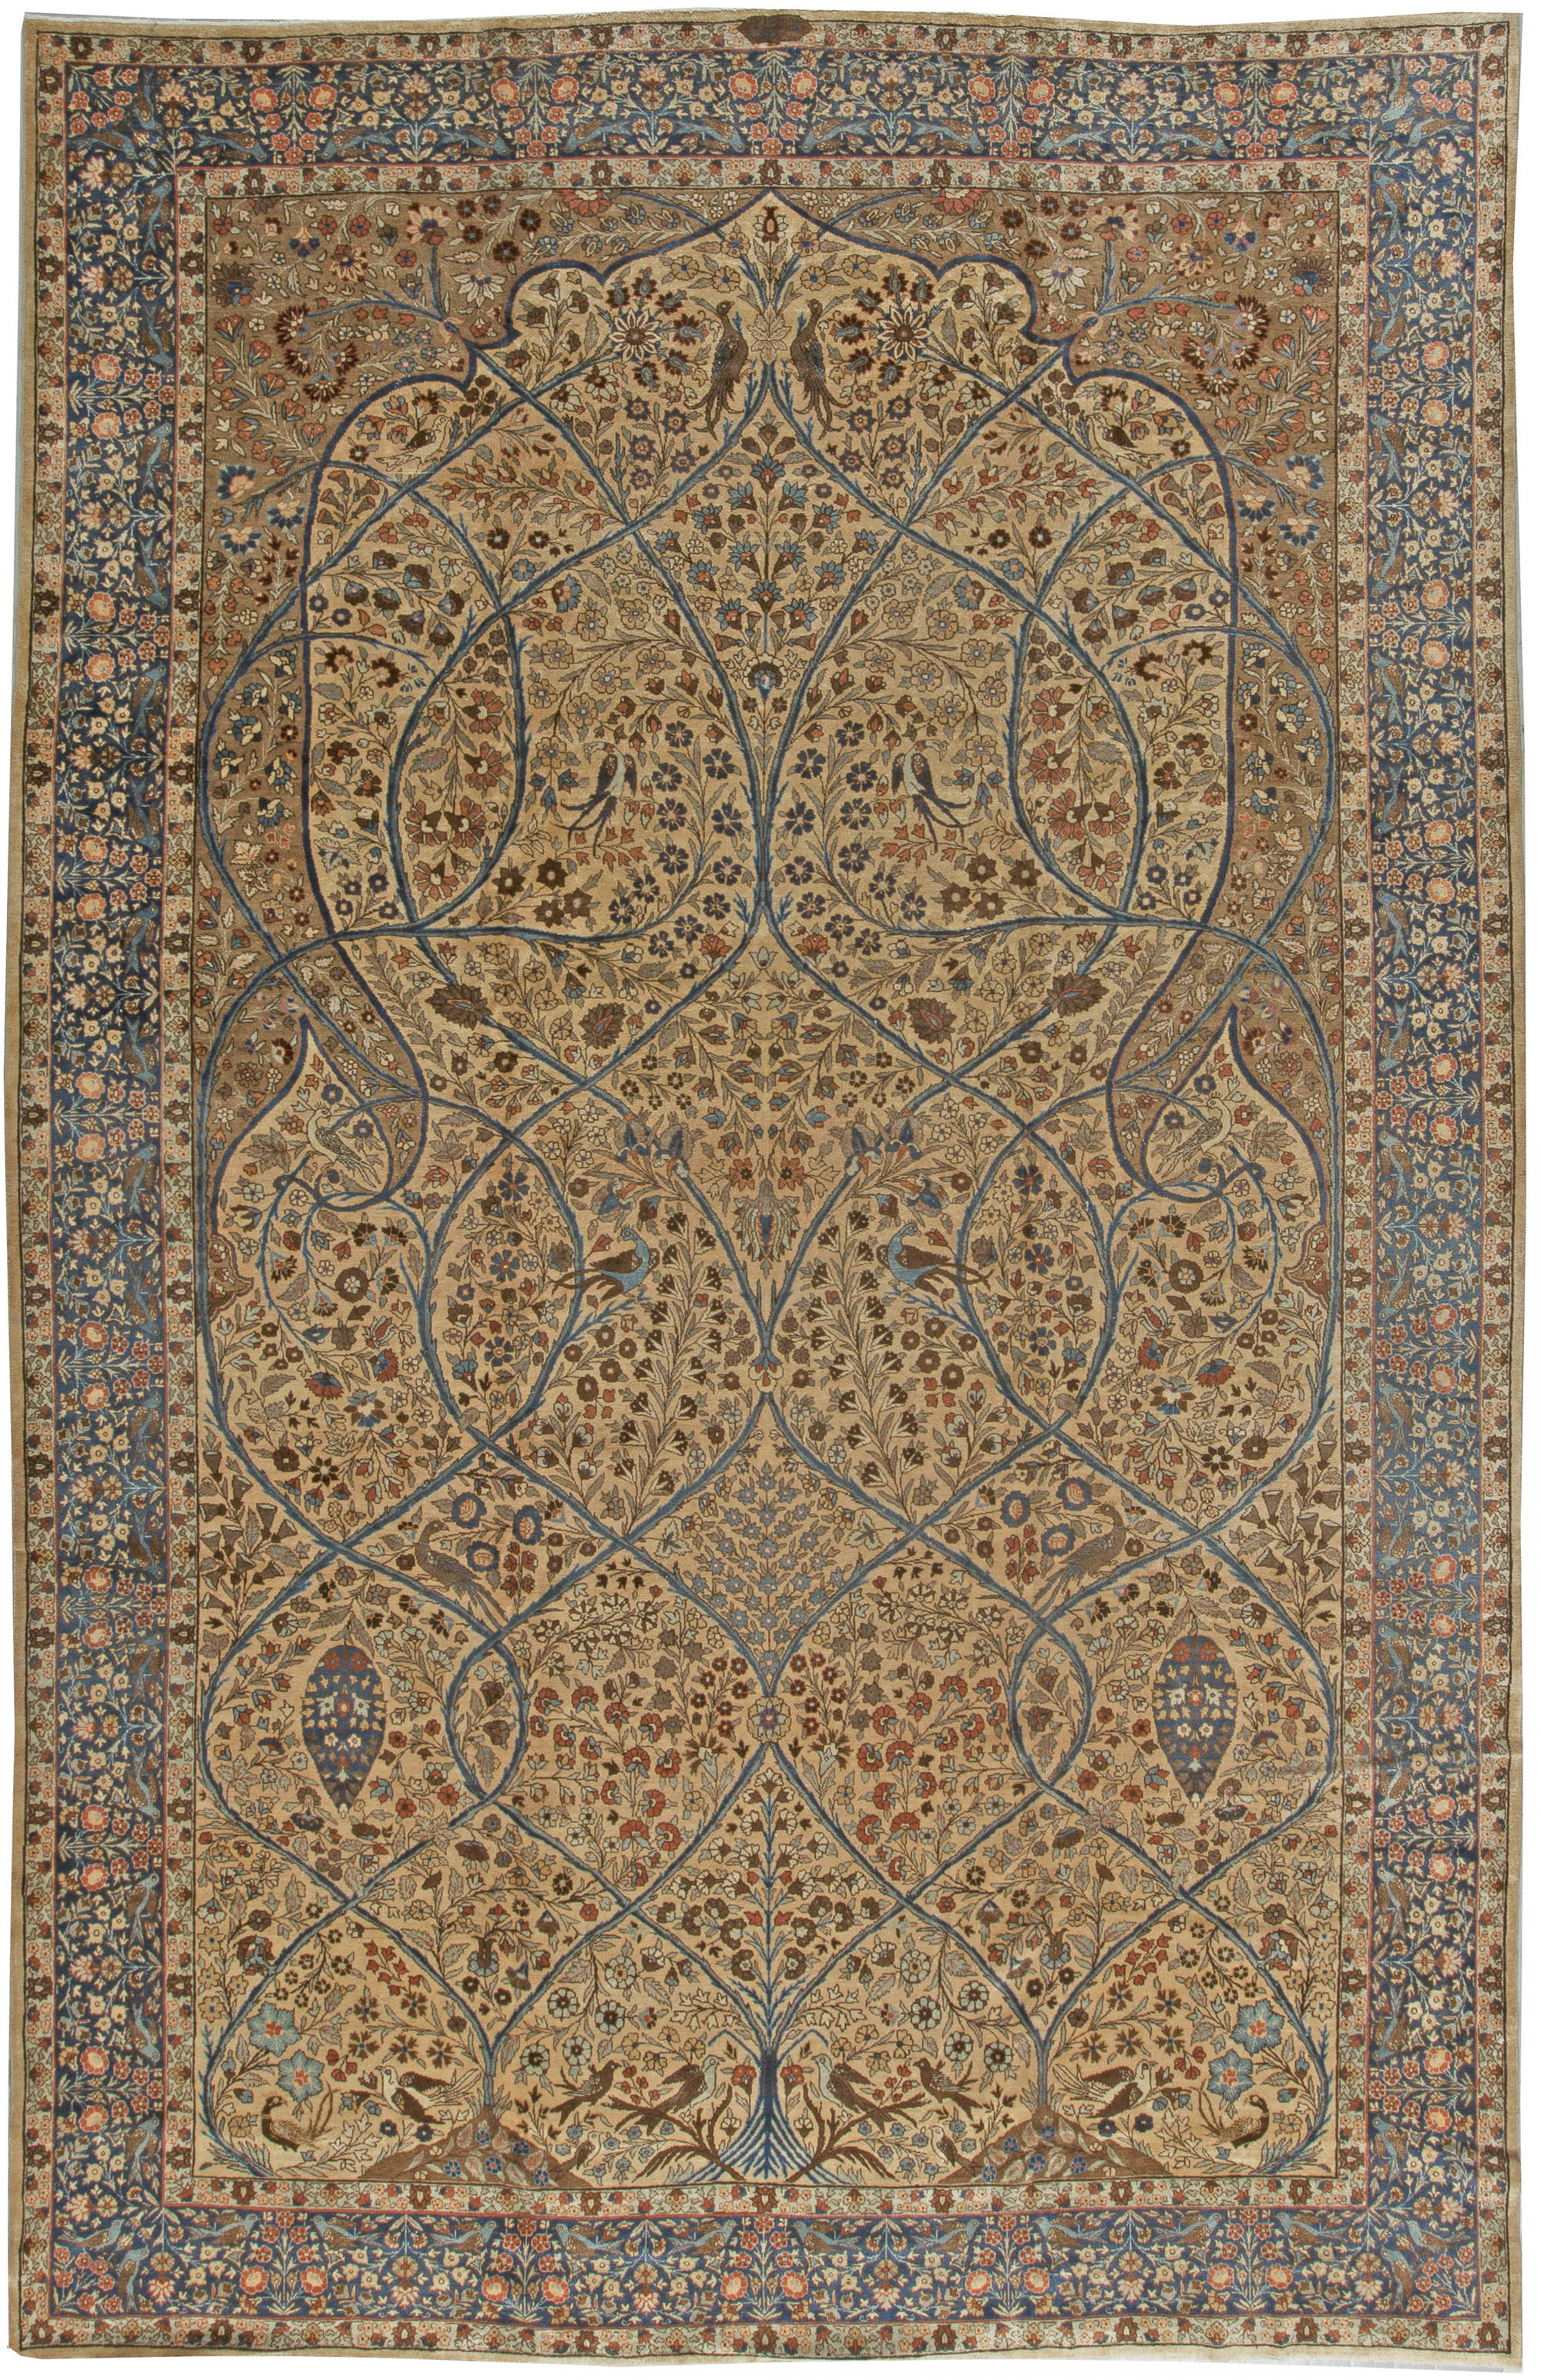 Antique Persian Tabriz Carpet Bb5552 By Doris Leslie Blau